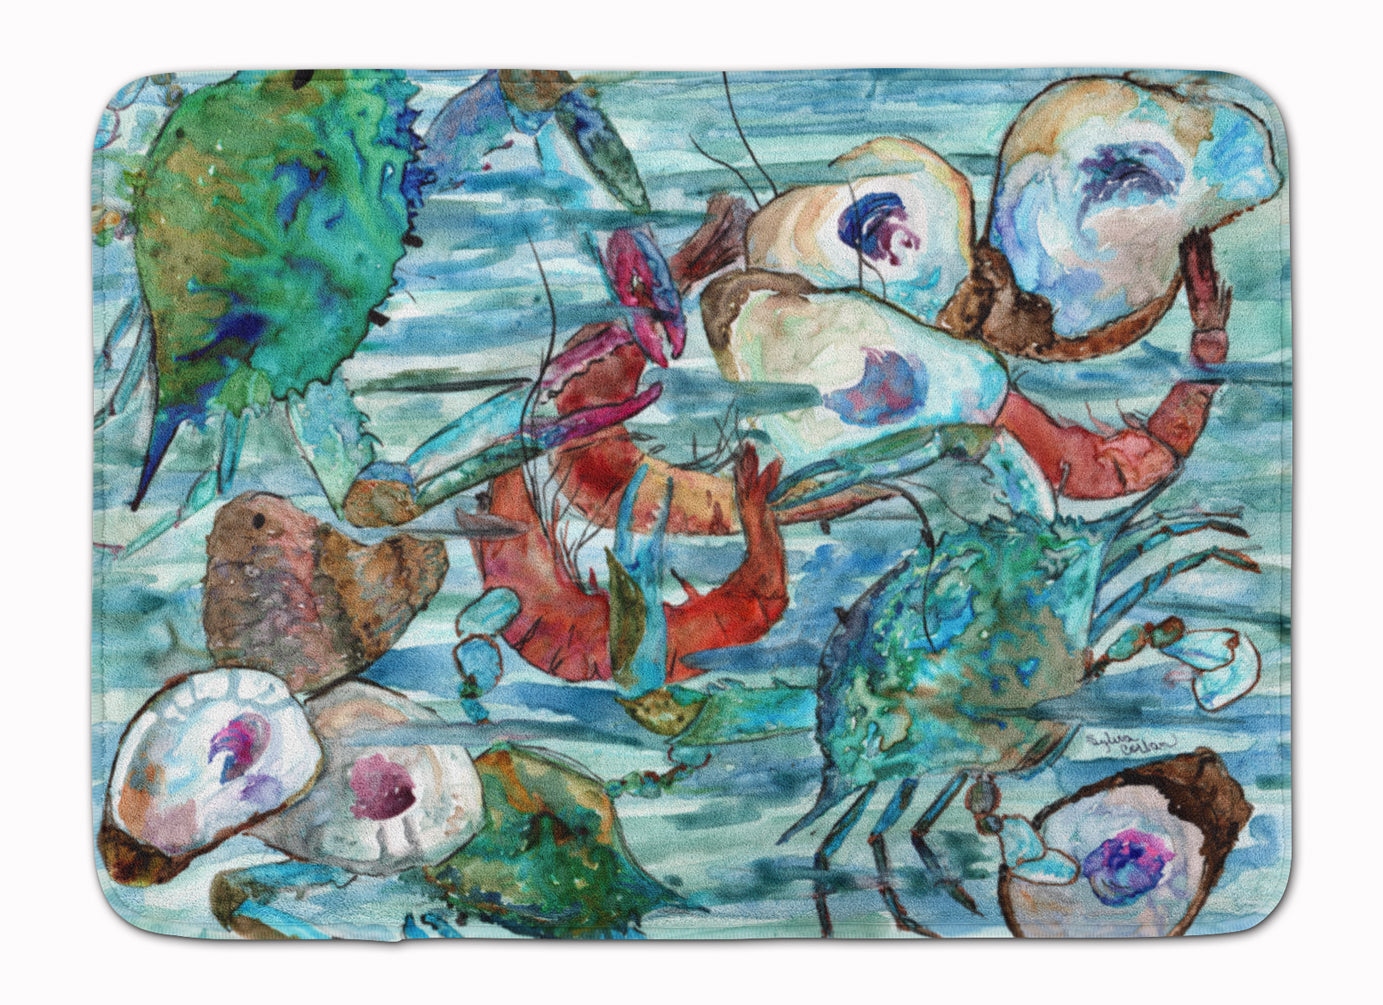 Watery Shrimp, Crabs and Oysters Machine Washable Memory Foam Mat 8964RUG by Caroline's Treasures